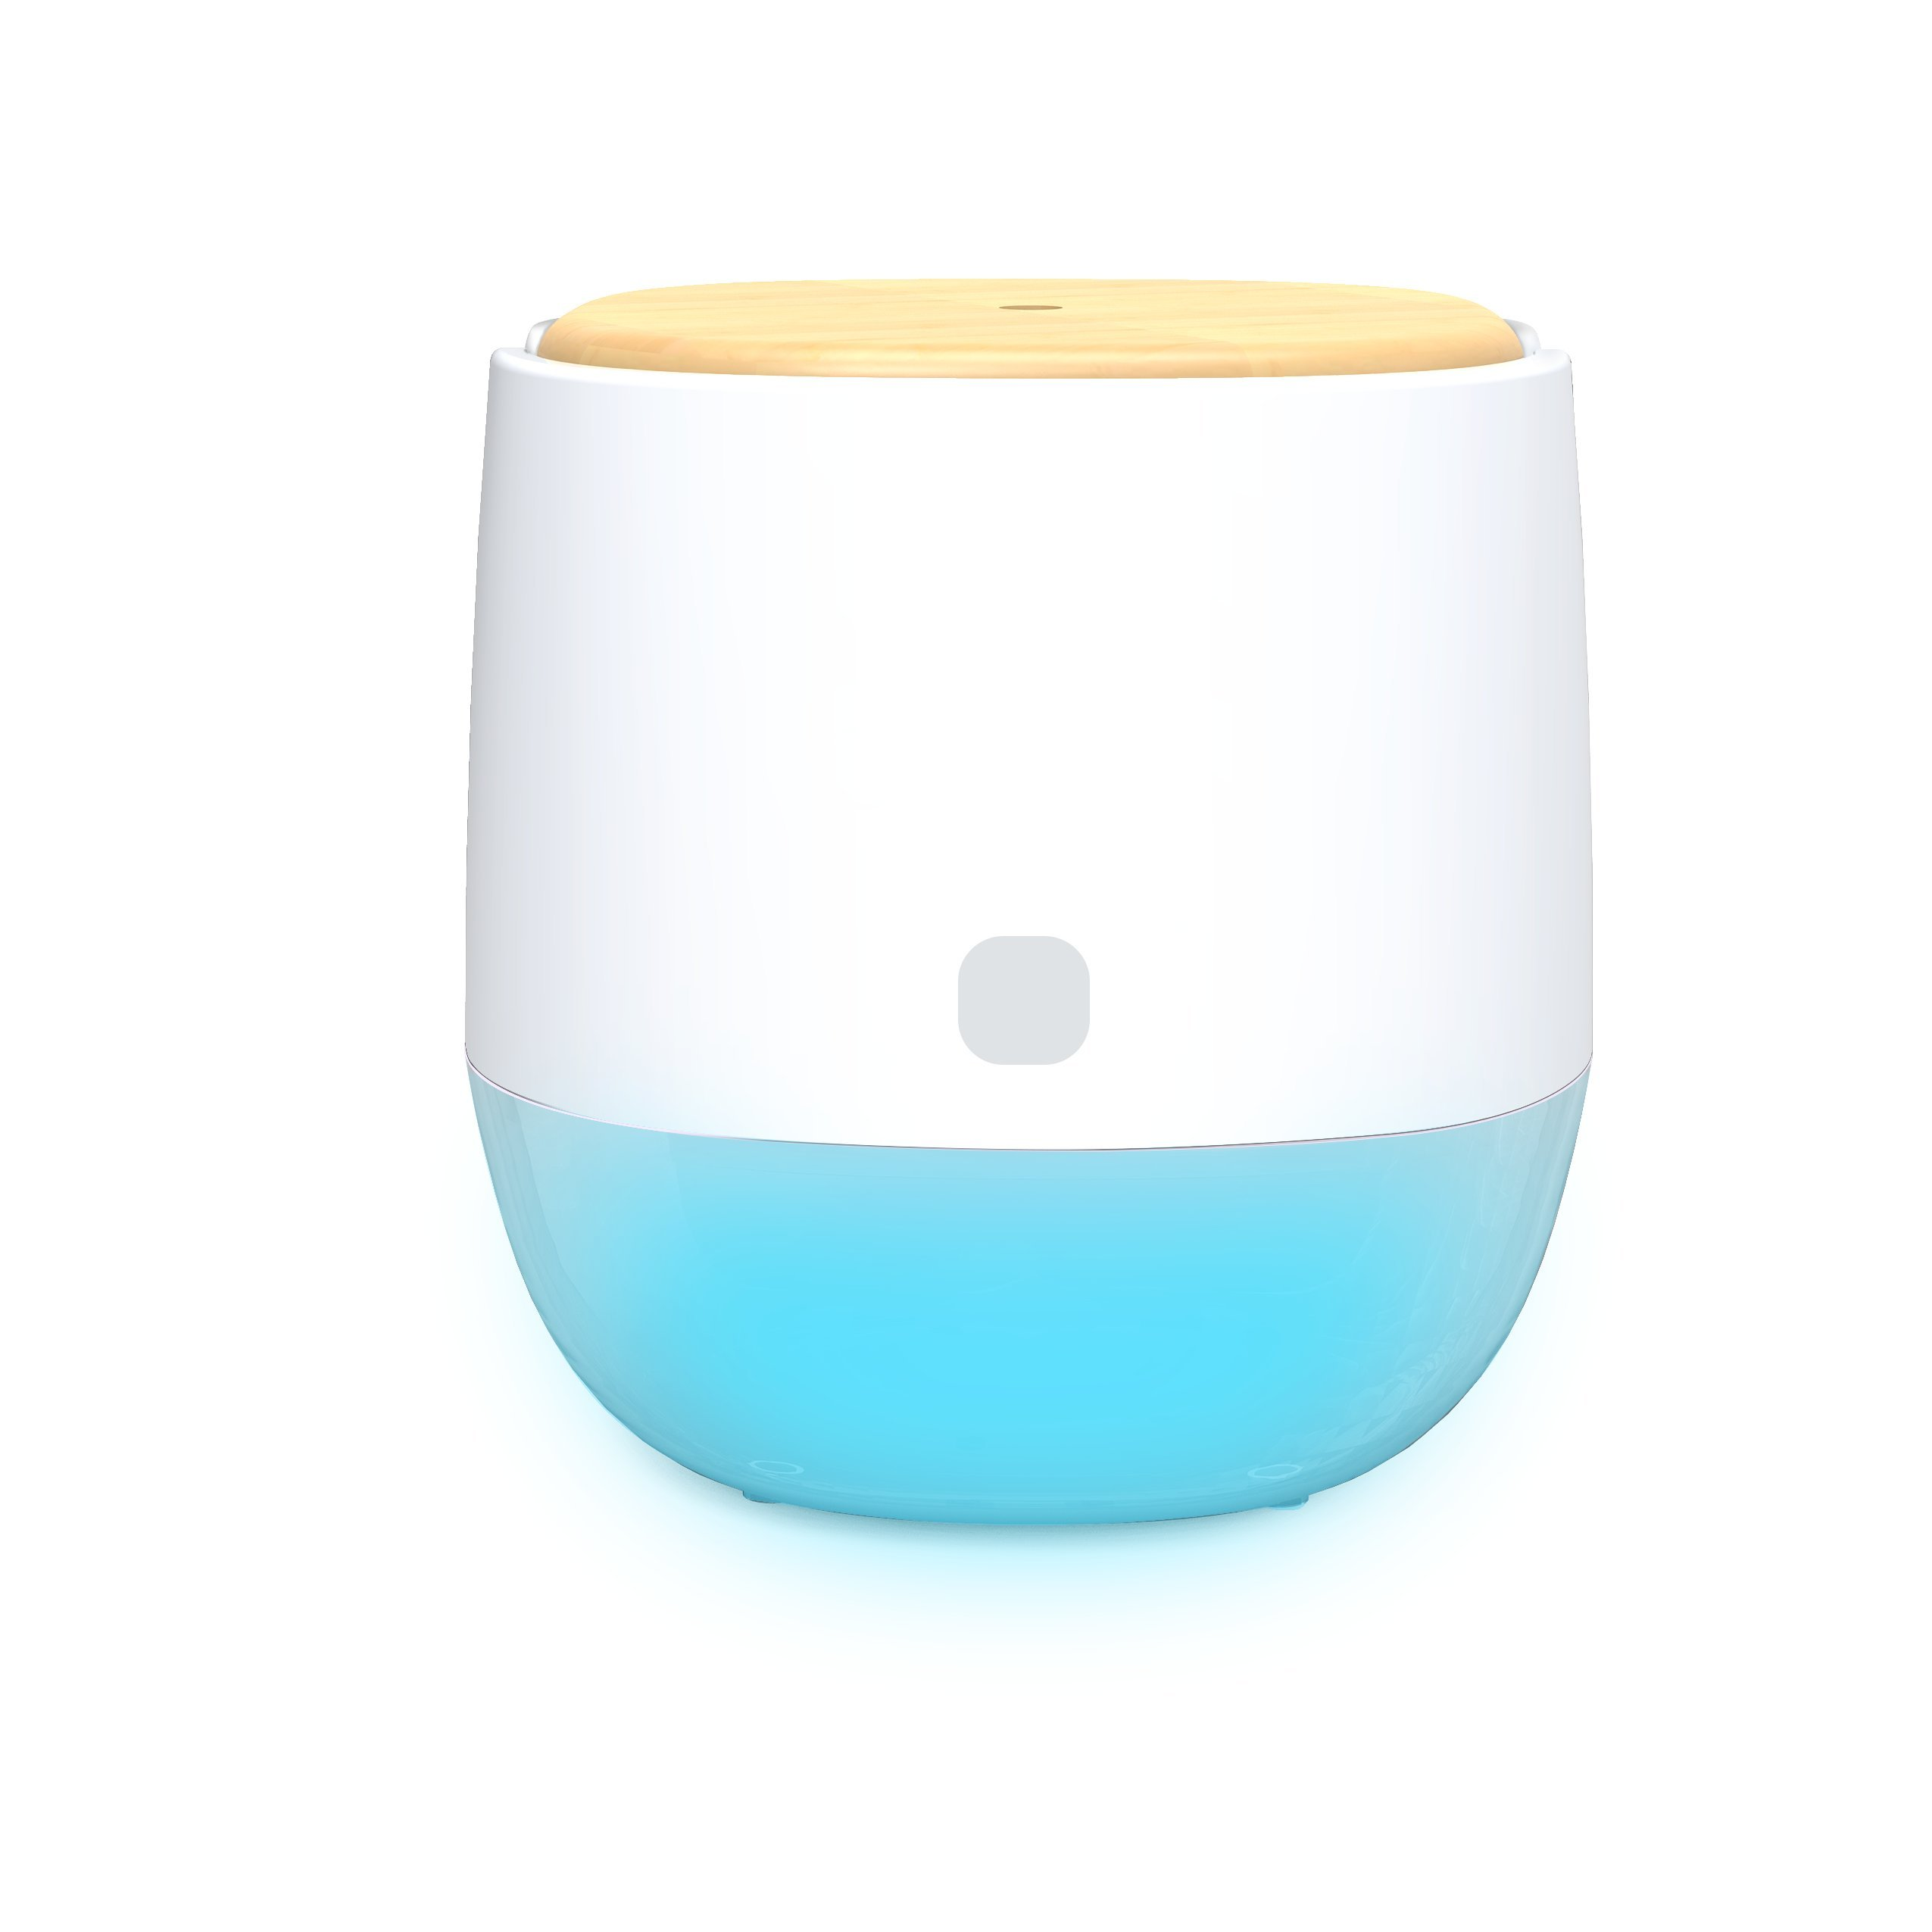 AROMATECH AromaPod 100% Pure Essential Oil Nebulizing Diffuser with Bamboo Top and LED Soft Light, 2 hour Auto Shut Off, Covers Areas of 500 sq.ft.